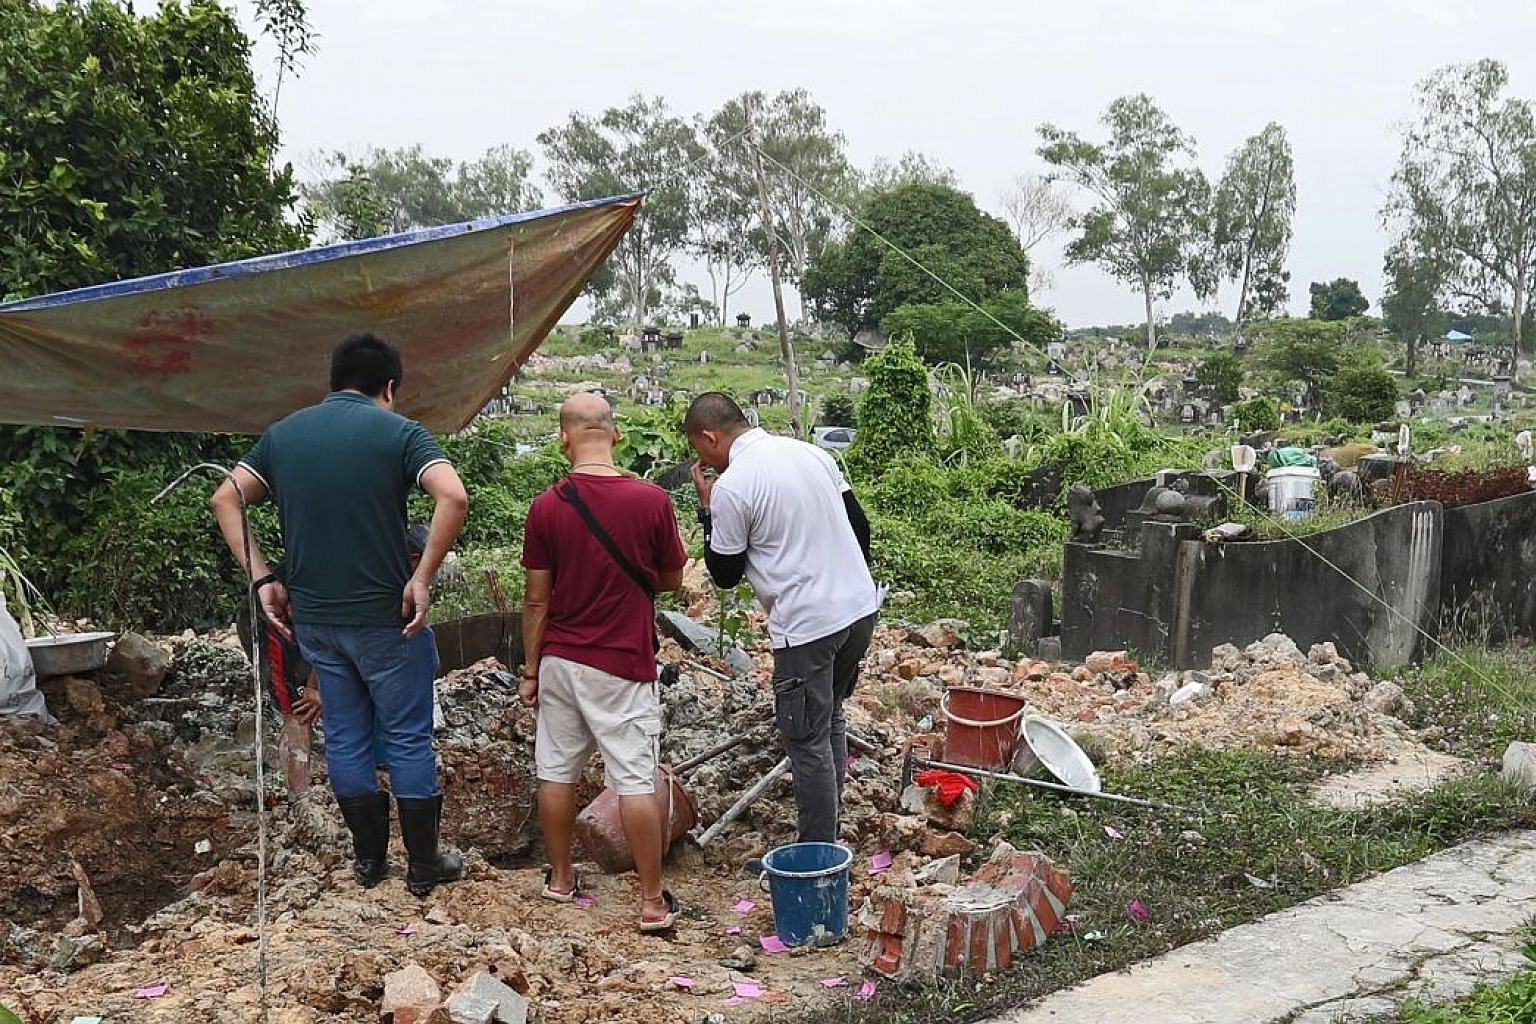 National Environment Agency workers conducting exhumations at Choa Chu Kang Chinese Cemetery. The agency said this is the first time it has encountered this misalignment issue in the 16,800 exhumations conducted as of Sept 30 under Phase 7 of its exh